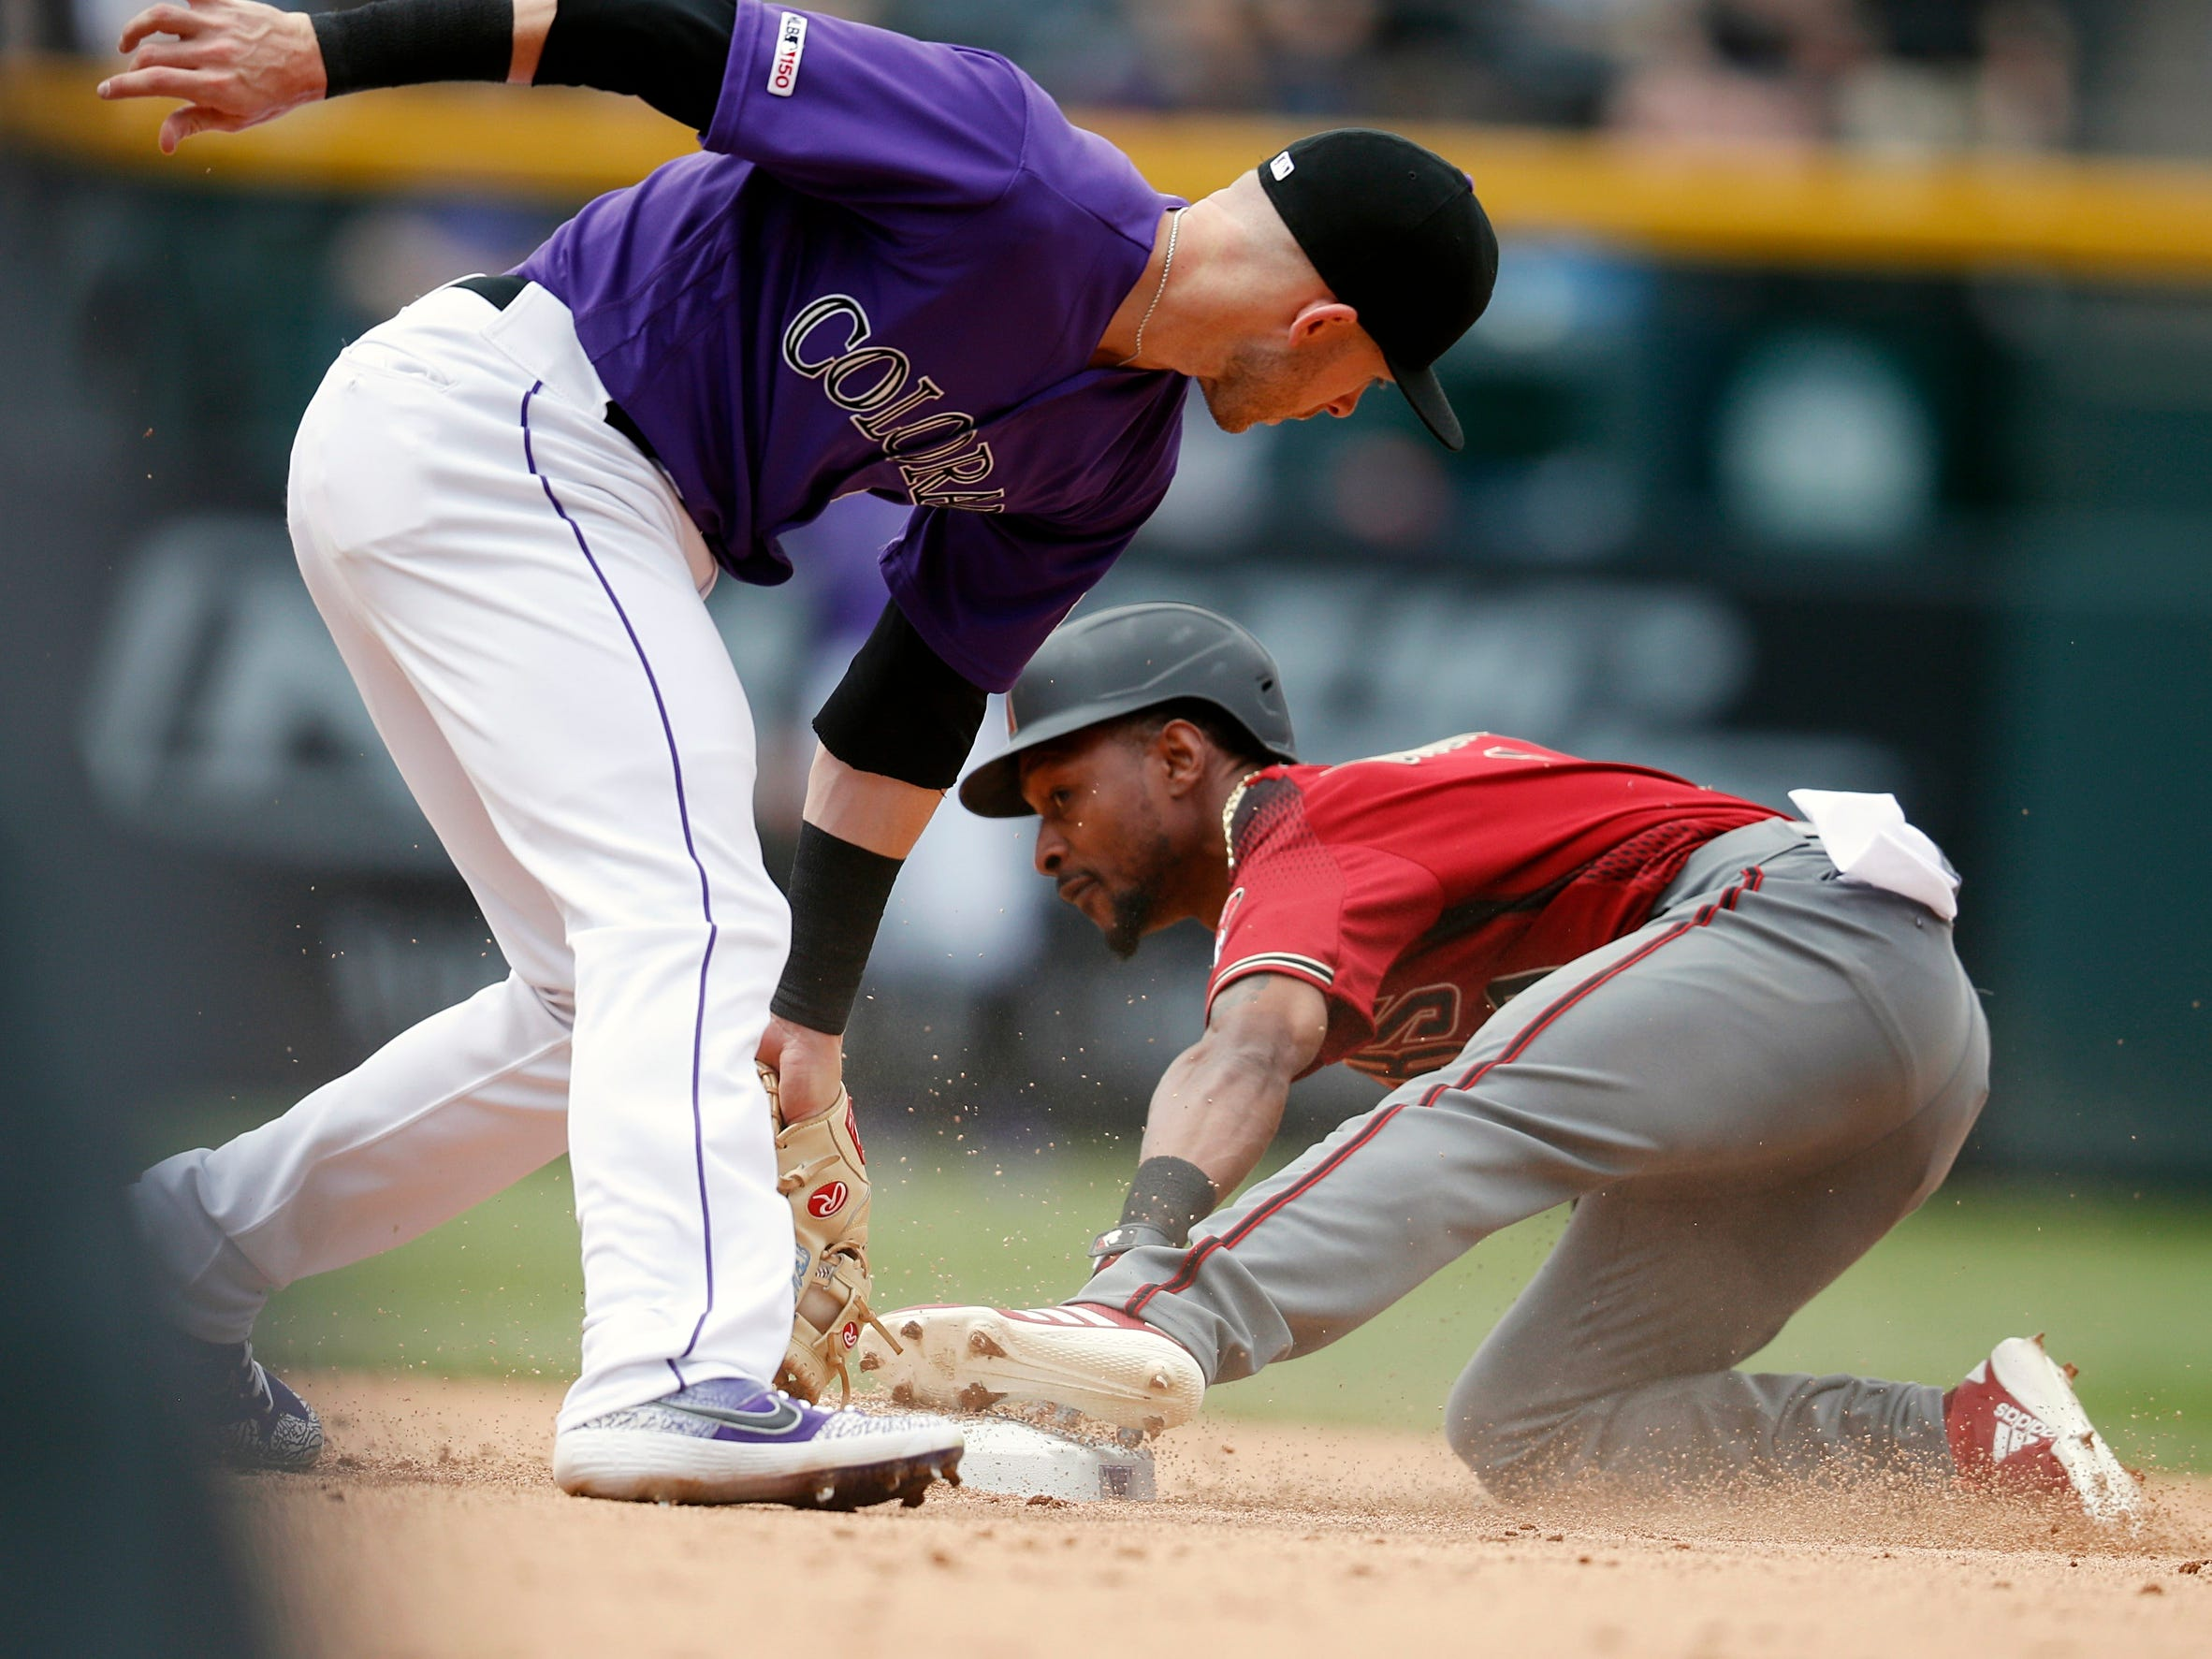 Colorado Rockies shortstop Trevor Story, left, applies a late tag as Arizona Diamondbacks' Jarrod Dyson steals second base in the fifth inning of a baseball game Sunday, May 5, 2019, in Denver. (AP Photo/David Zalubowski)